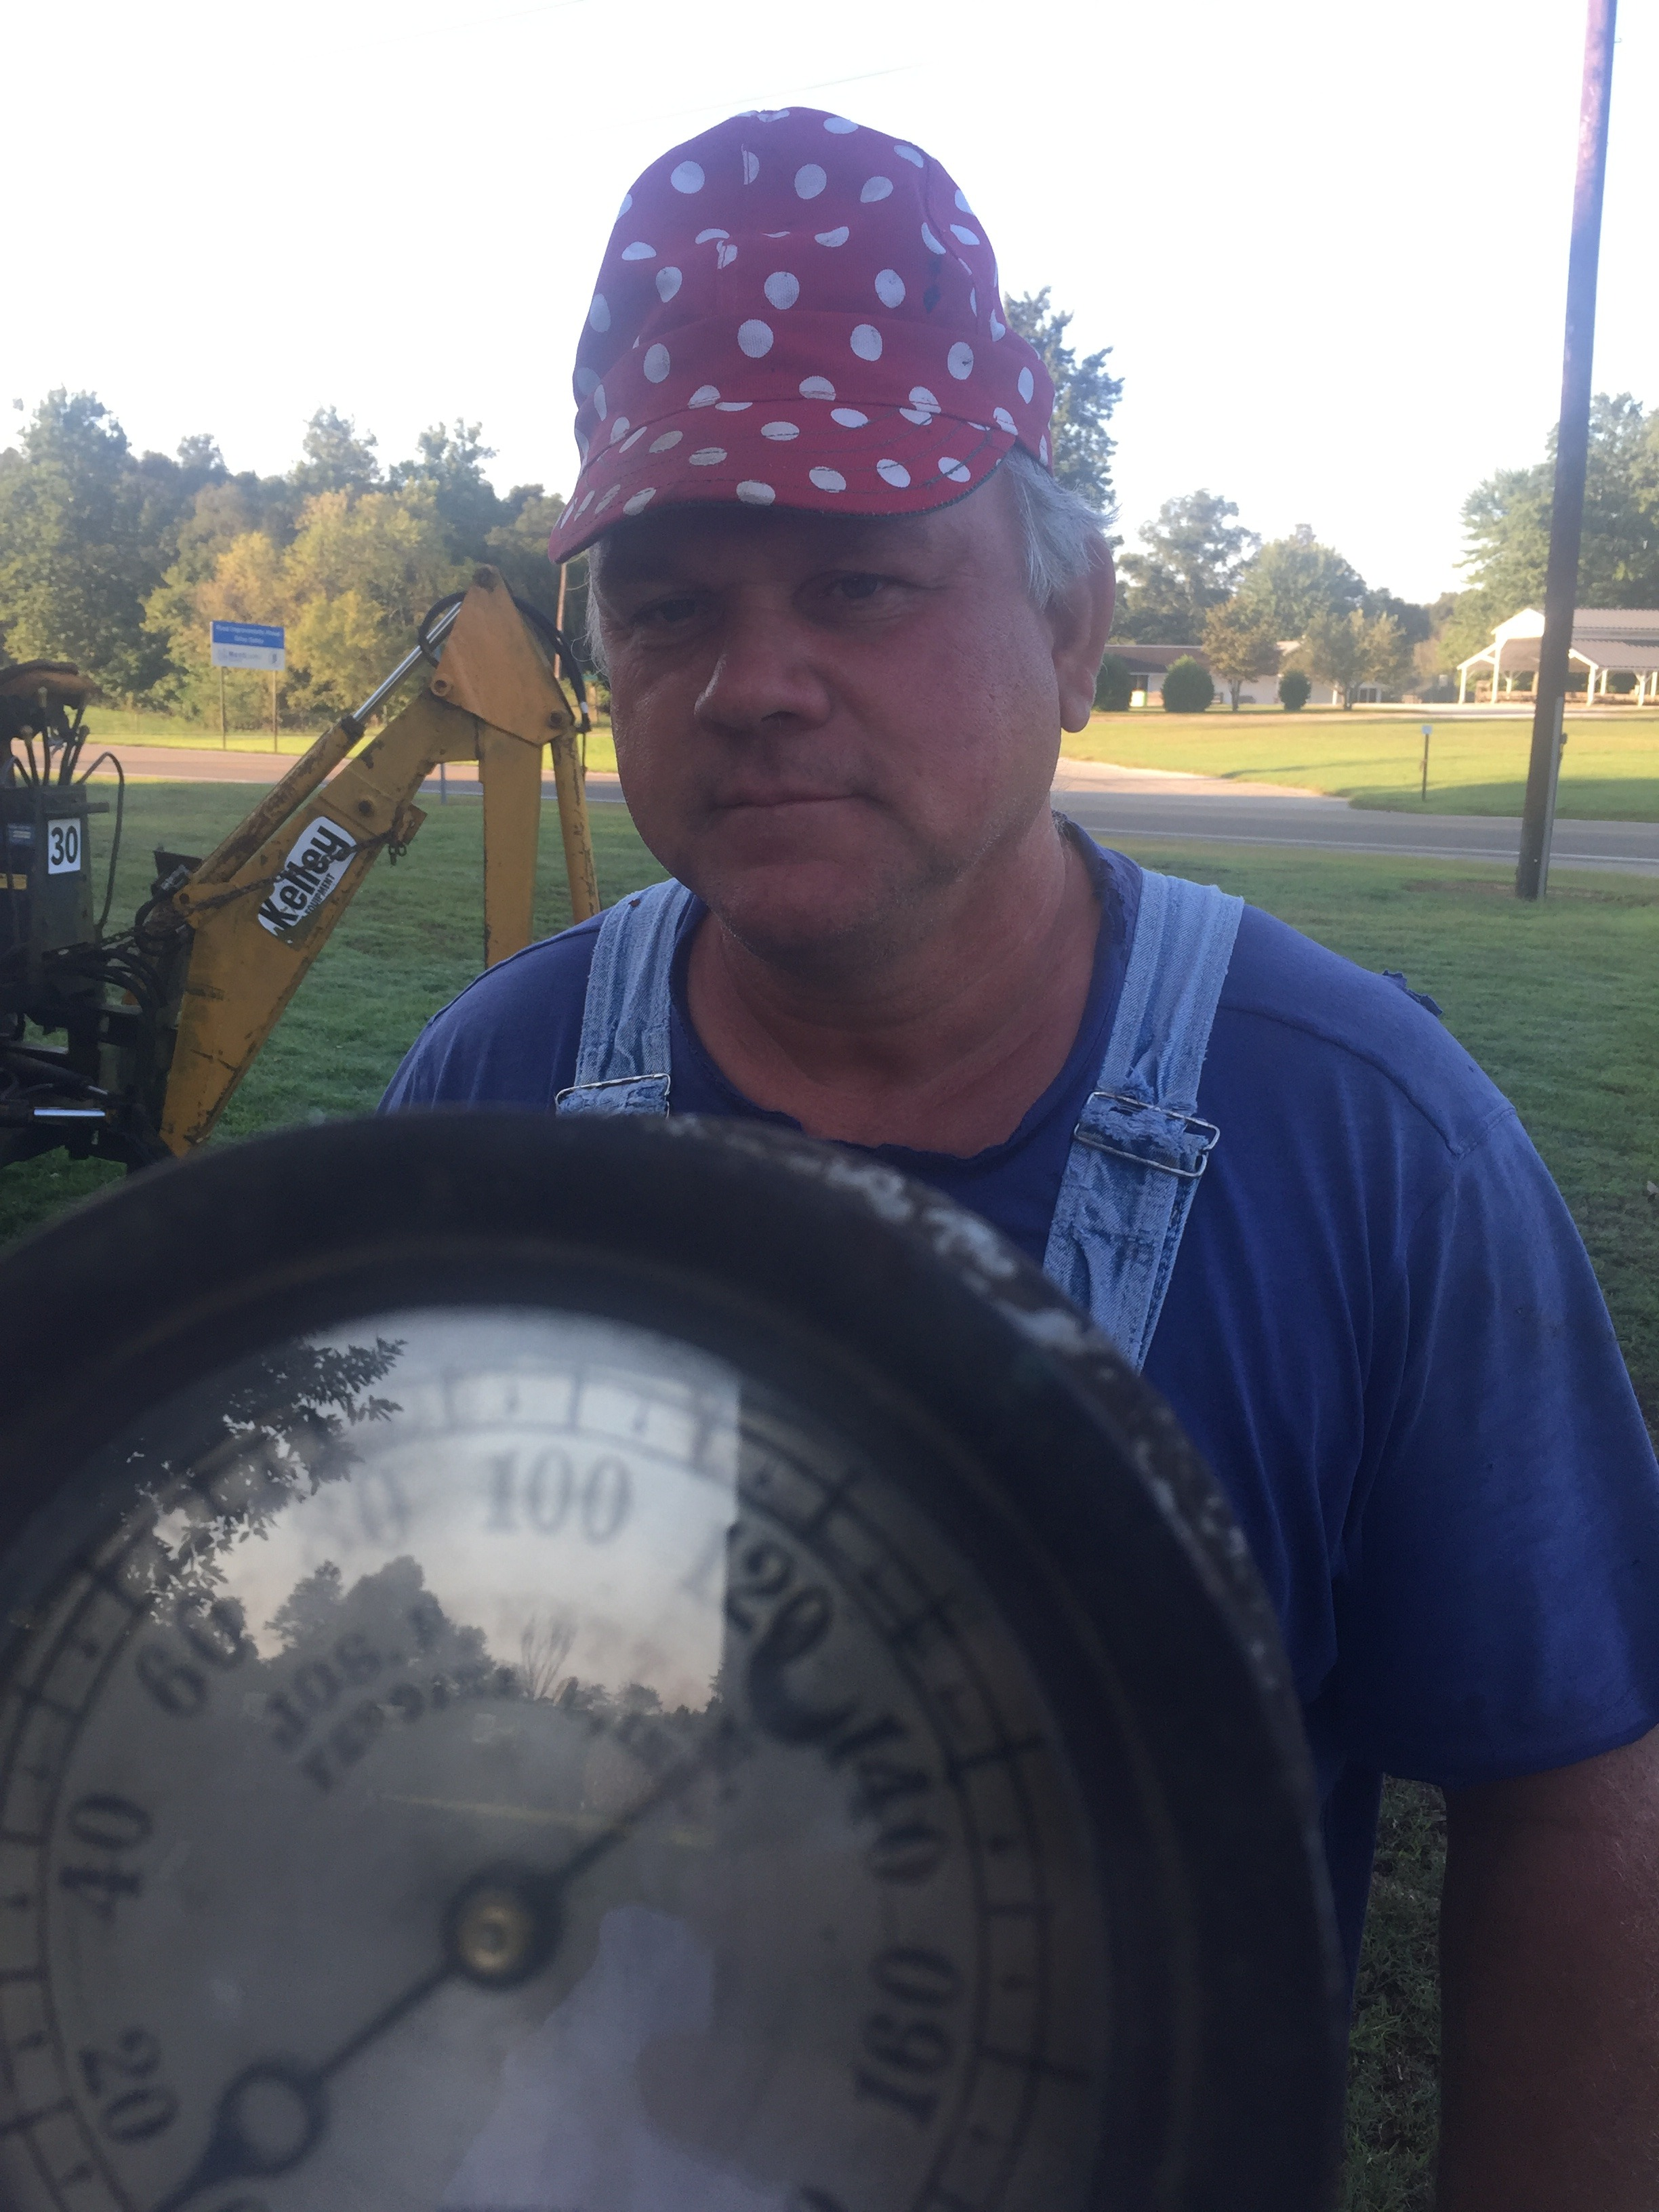 Joe Driman shows his rare Steam Gauge which has the name JOSEPH F. KITTEN.